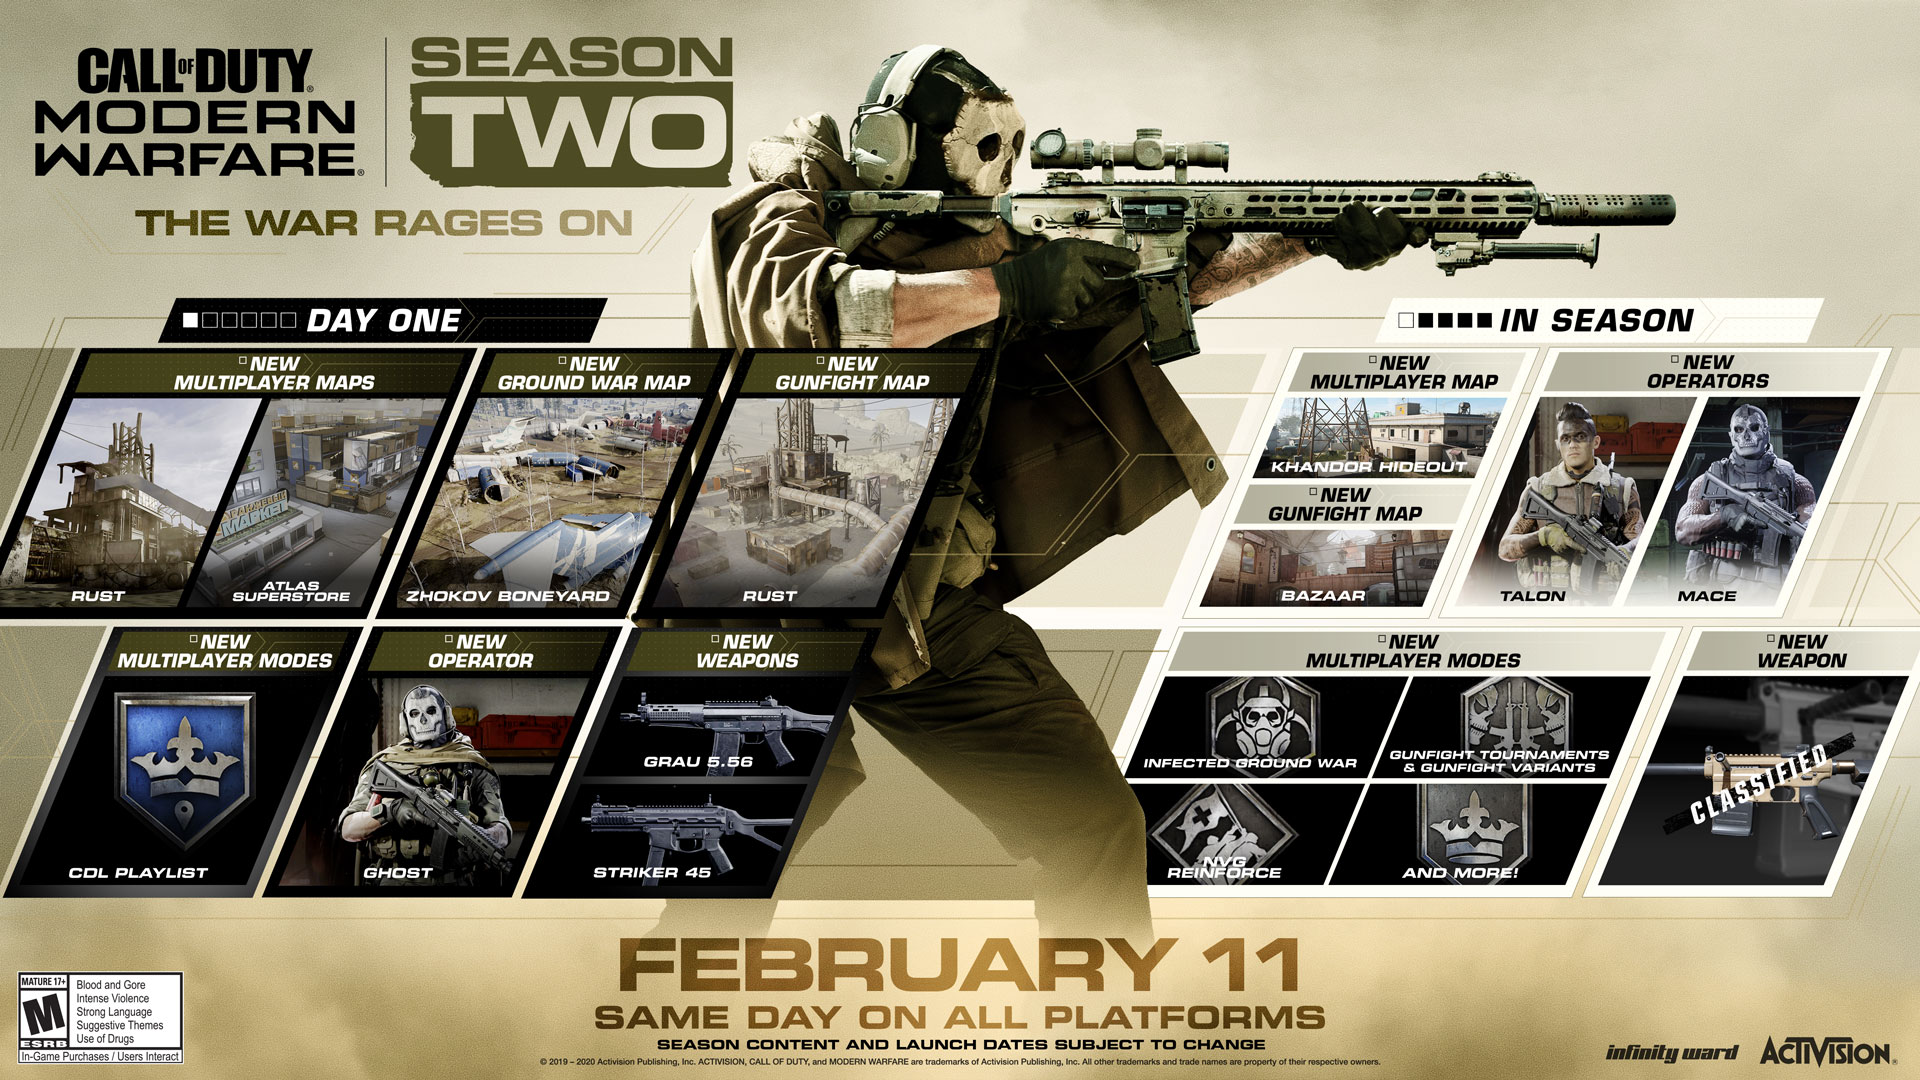 Season Two Launches In Call Of Duty Modern Warfare On February 11